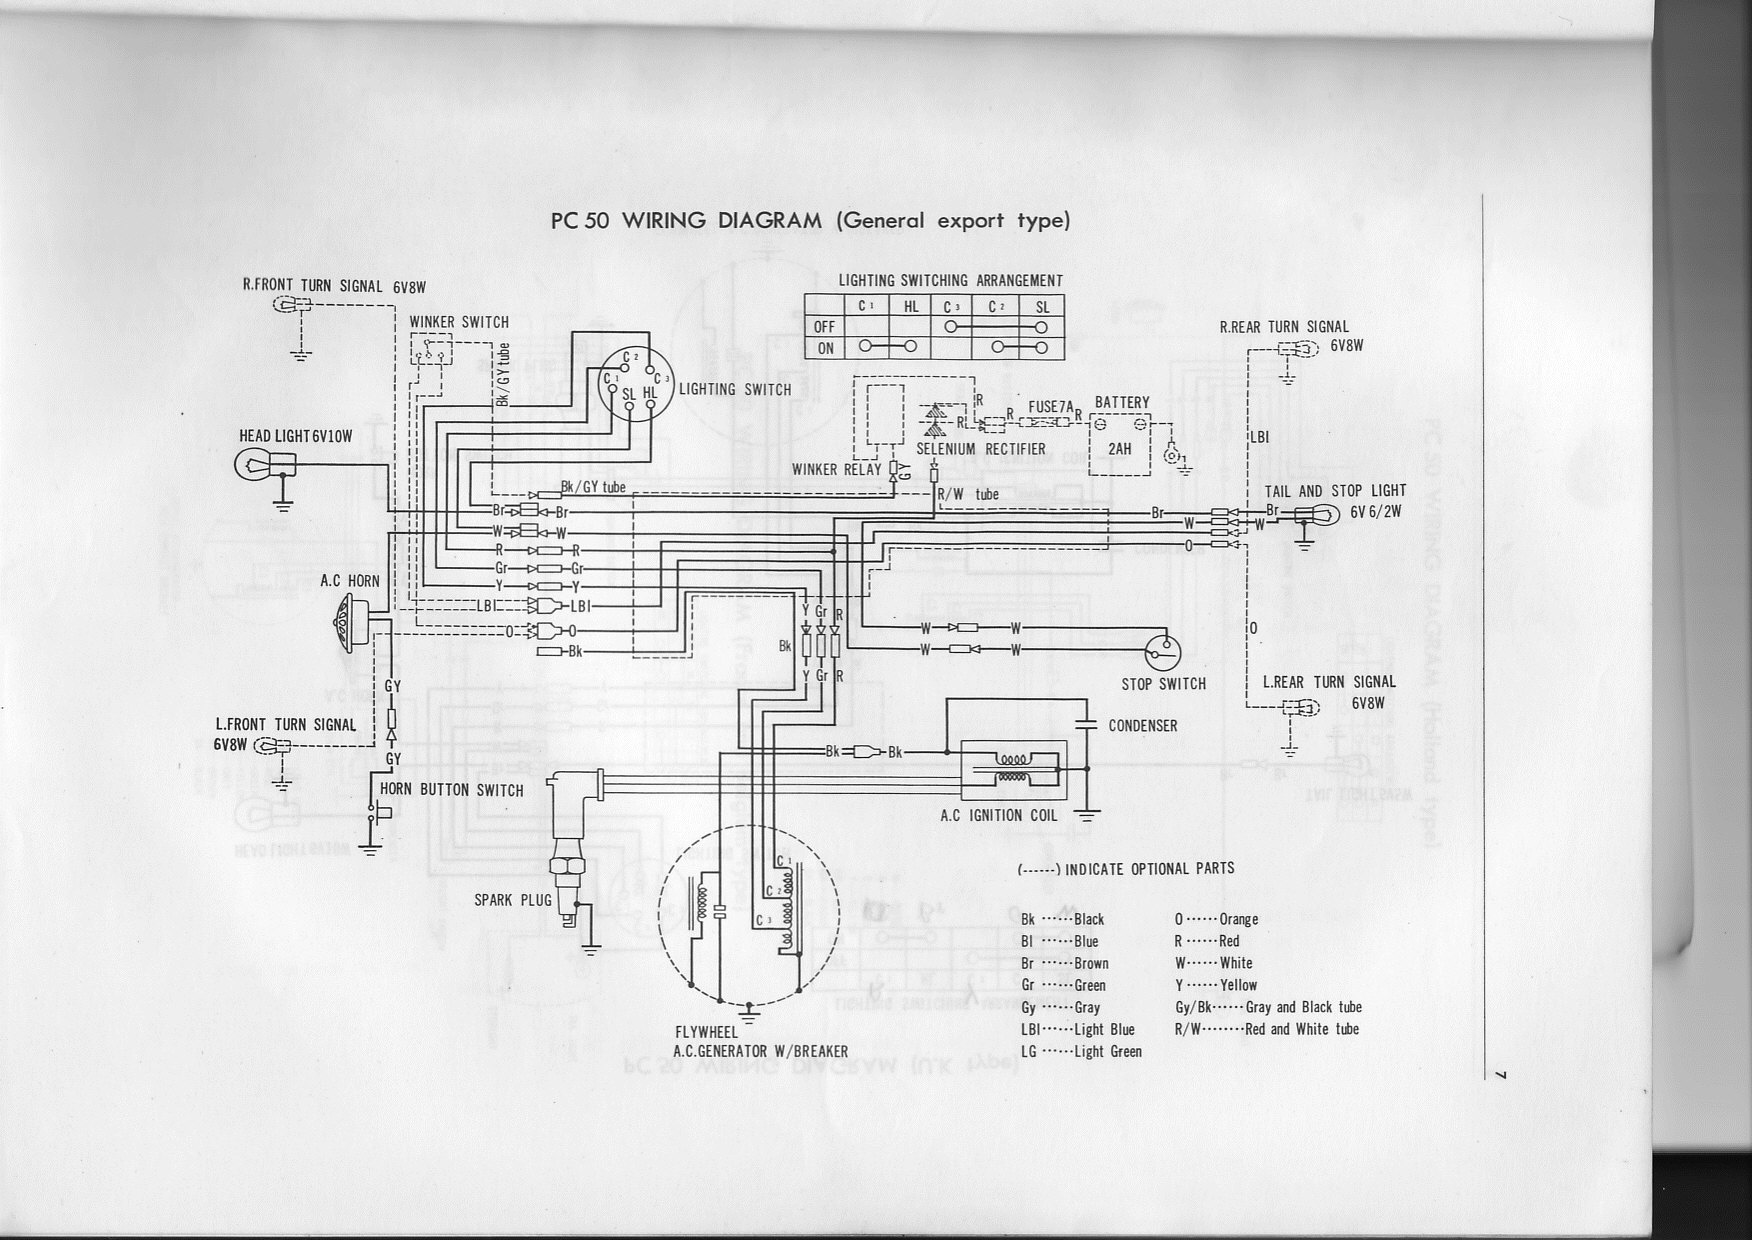 1214006977 pc50 wiring diagram img  u00b7 fourstrokebarn